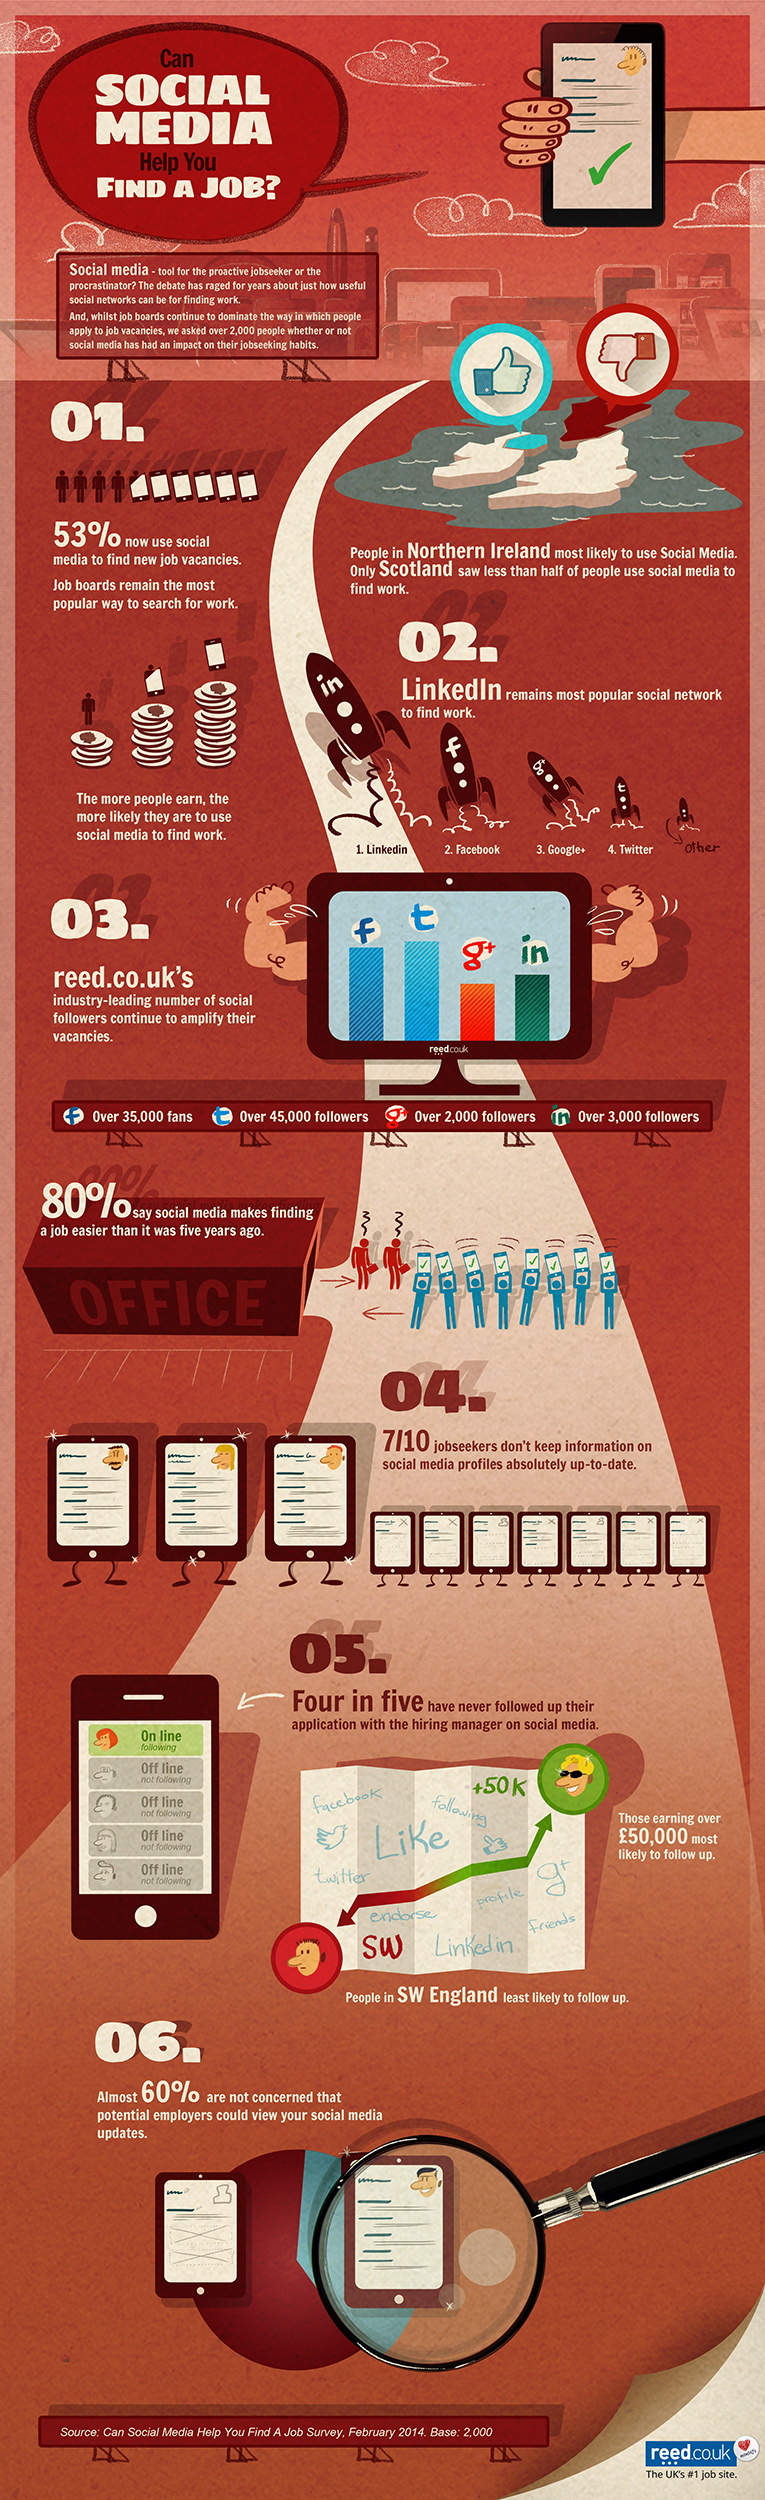 #infographic: How jobseekers use social networks to find work